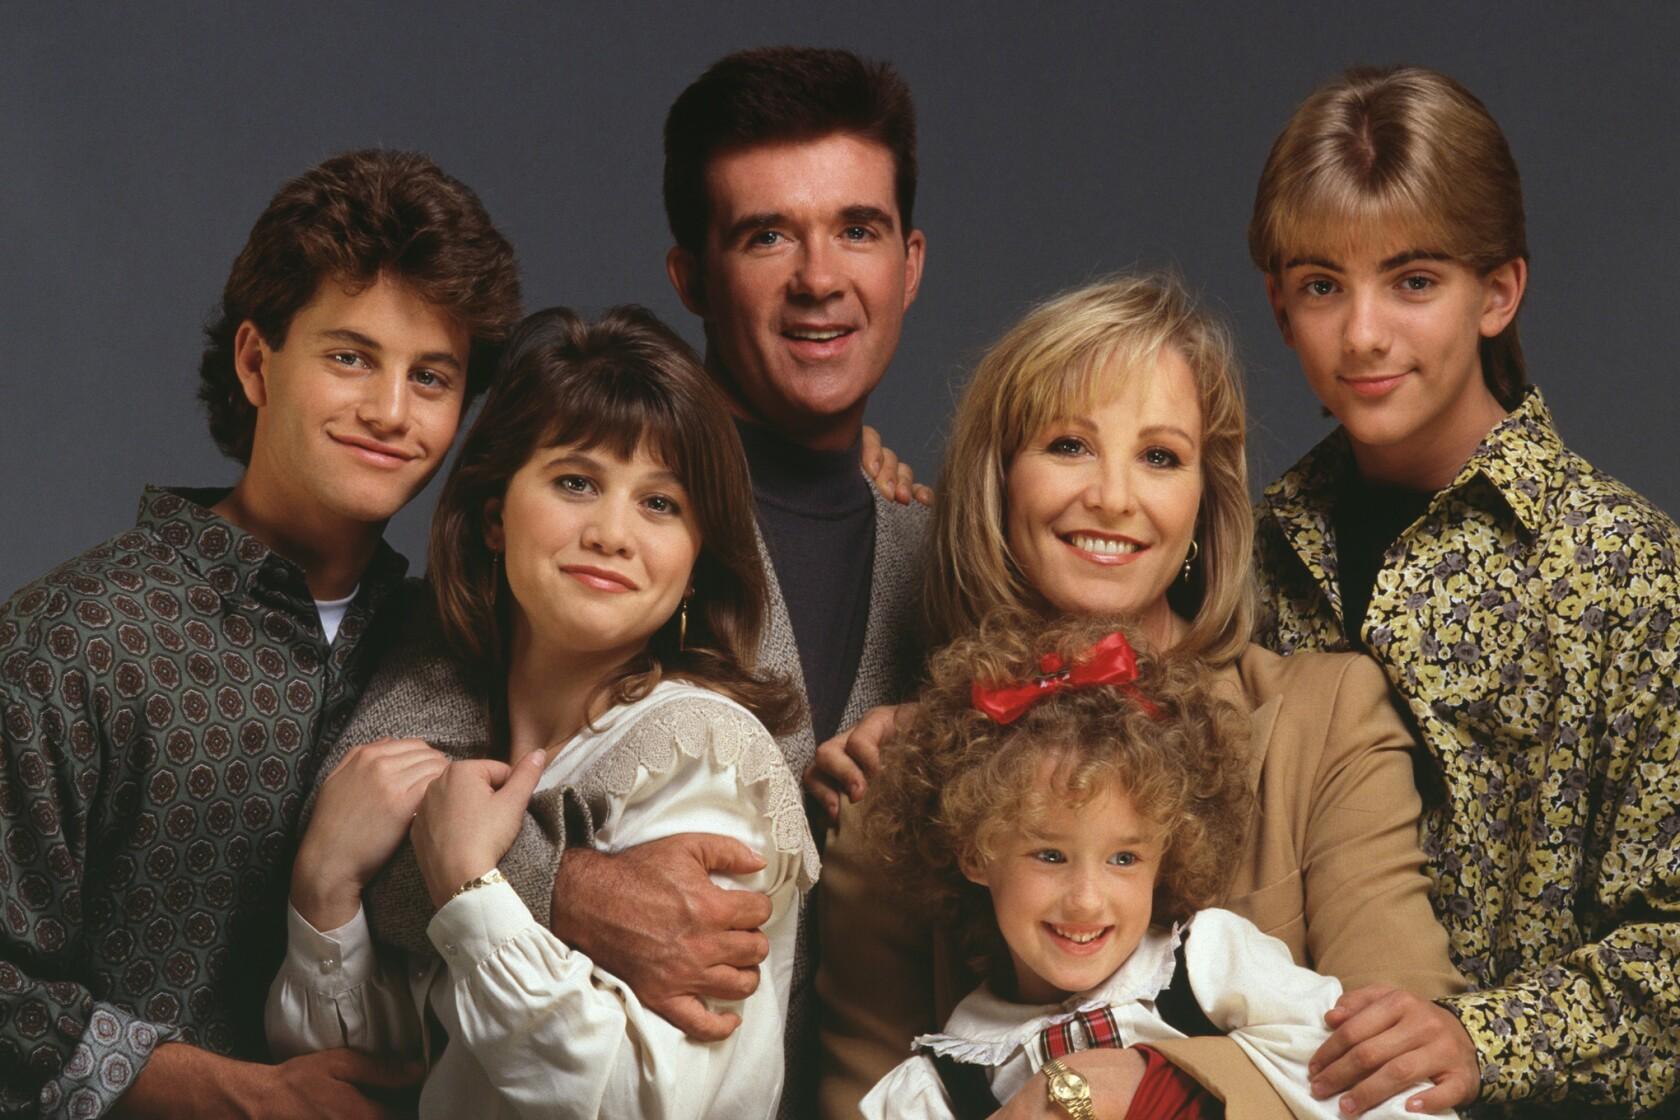 Alan Thicke, actor and dad on '80s sitcom 'Growing Pains